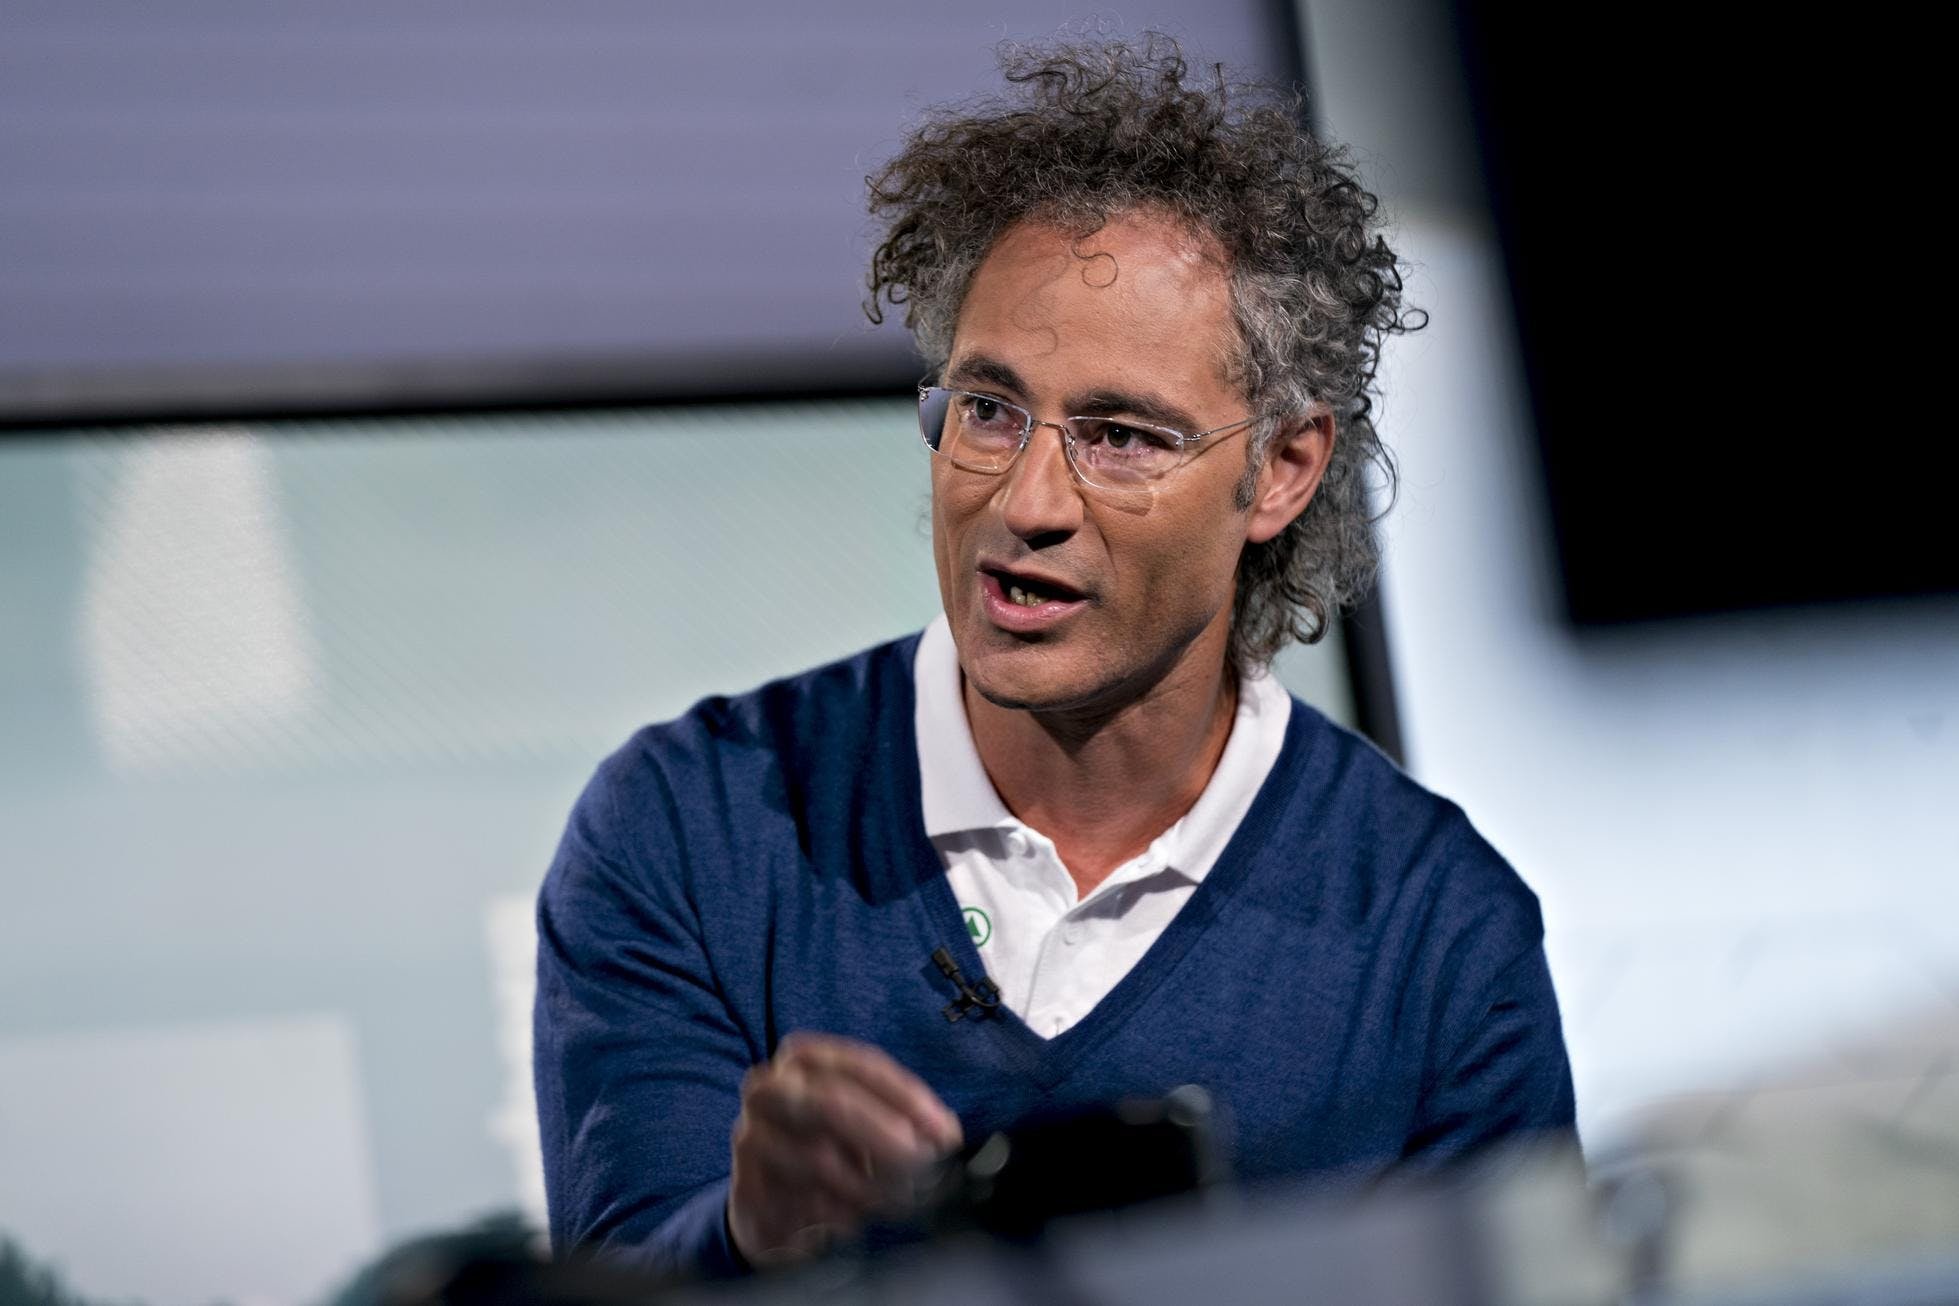 ALEX KARP: THE CO-FOUNDER AND CEO OF PALANTIR TECHNOLOGIES